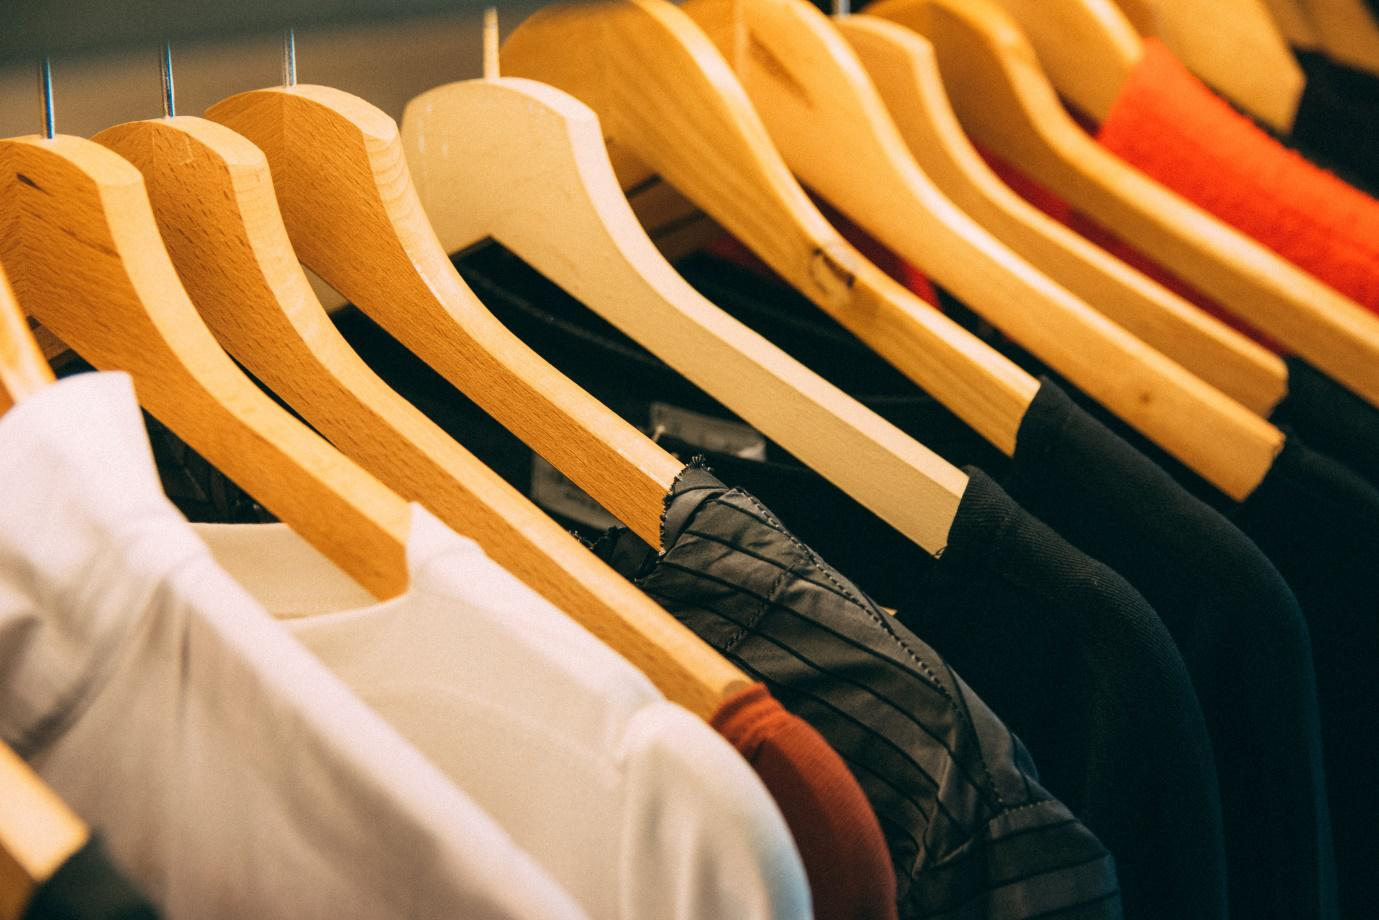 Why A Good Systems Are Vital For Any Clothing, Footwear, Or Fashion Business